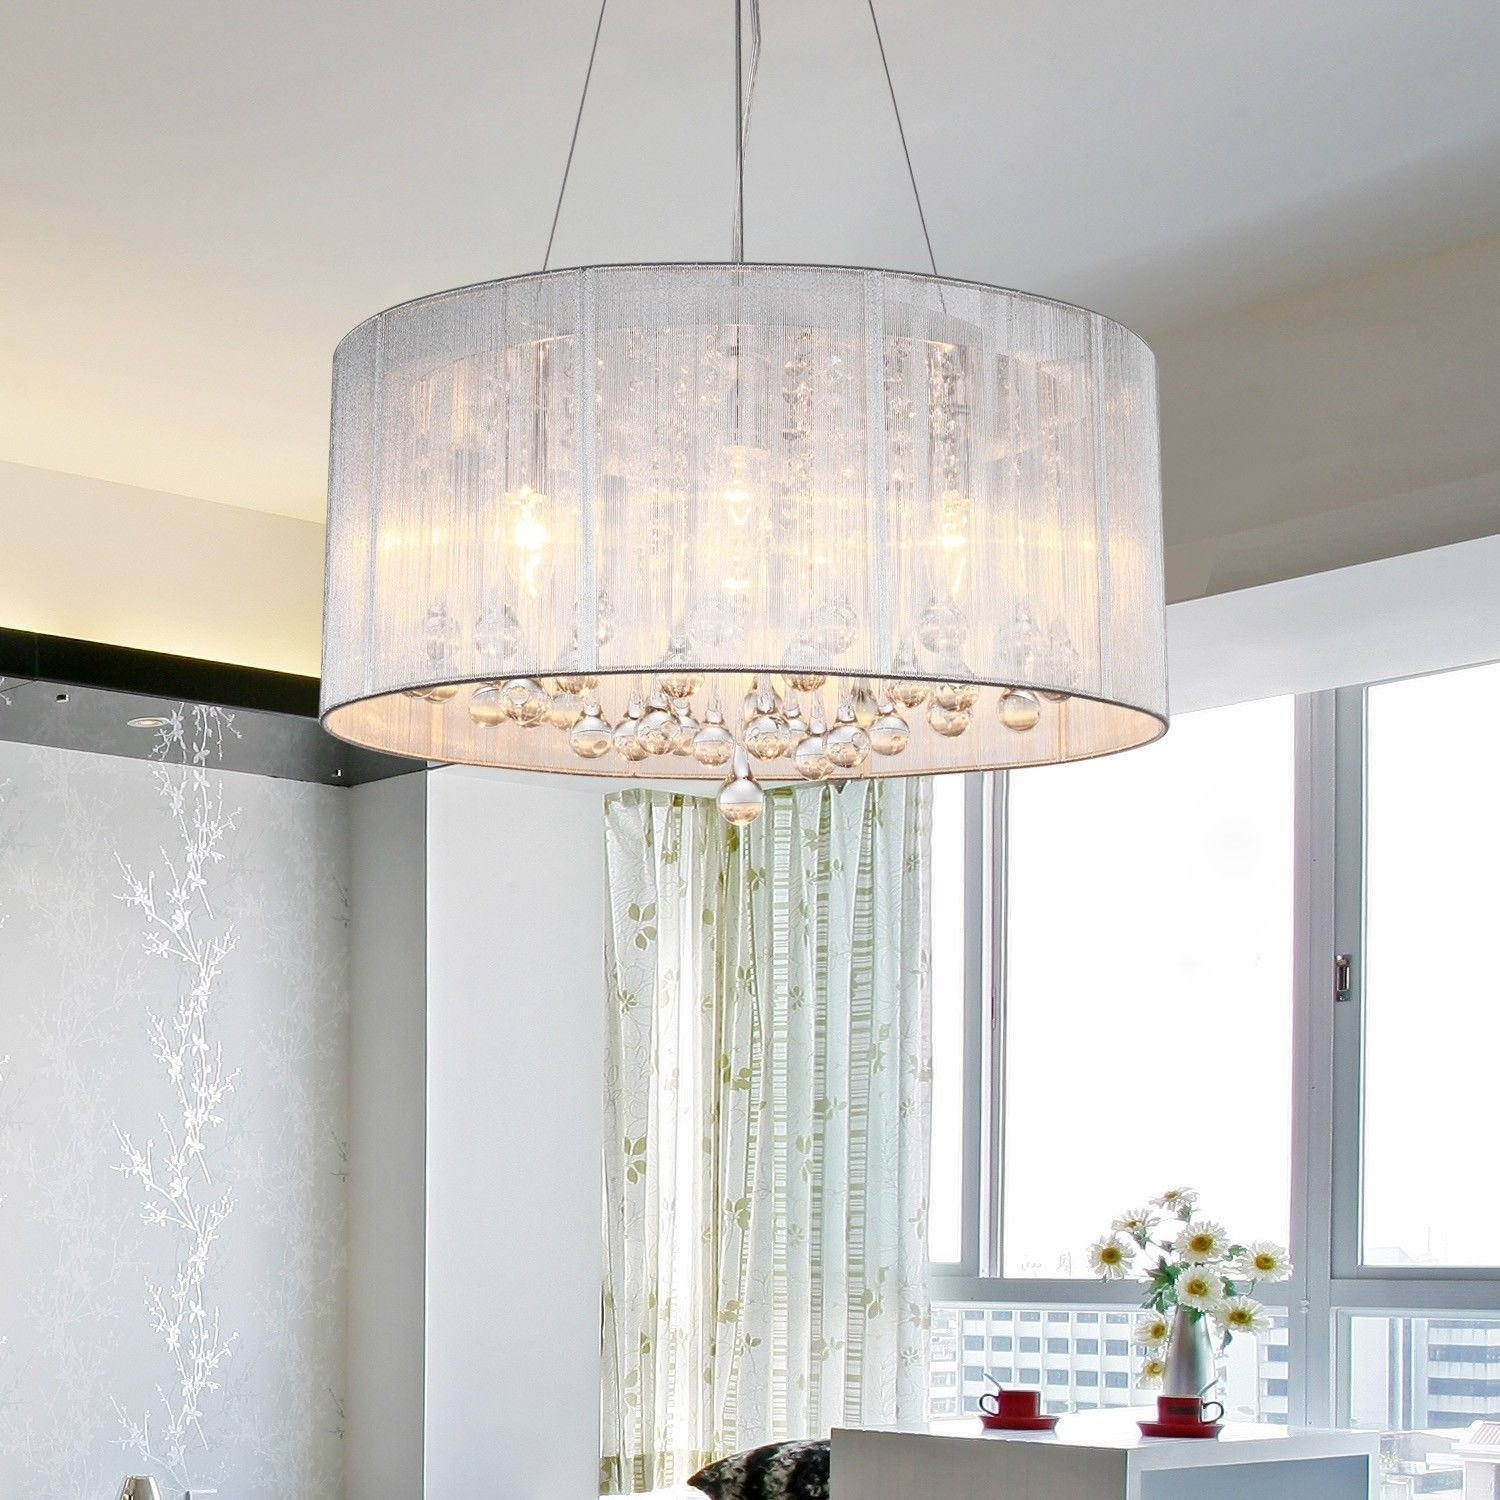 Very Awesome Lamp Shade Chandelier Best Home Decor Inspirations Intended For Chandelier Light Shades (Photo 3 of 25)